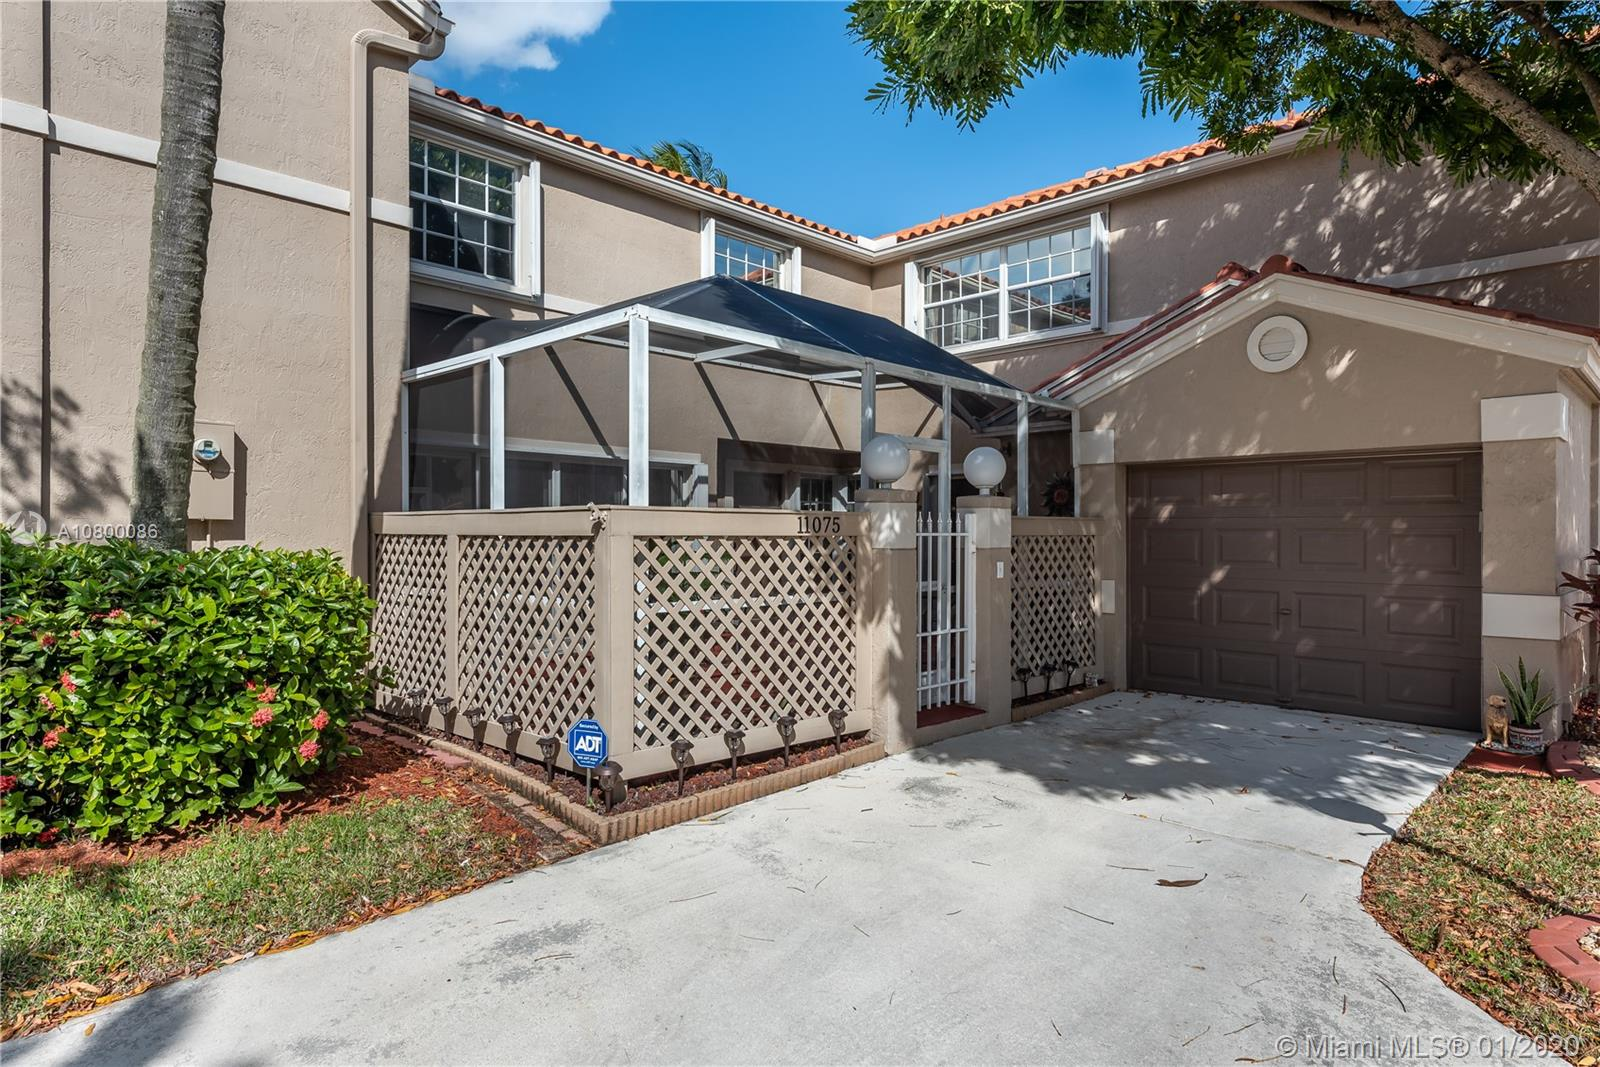 Cooper City Homes for Sale -  Townhome,  11075 Neptune Dr